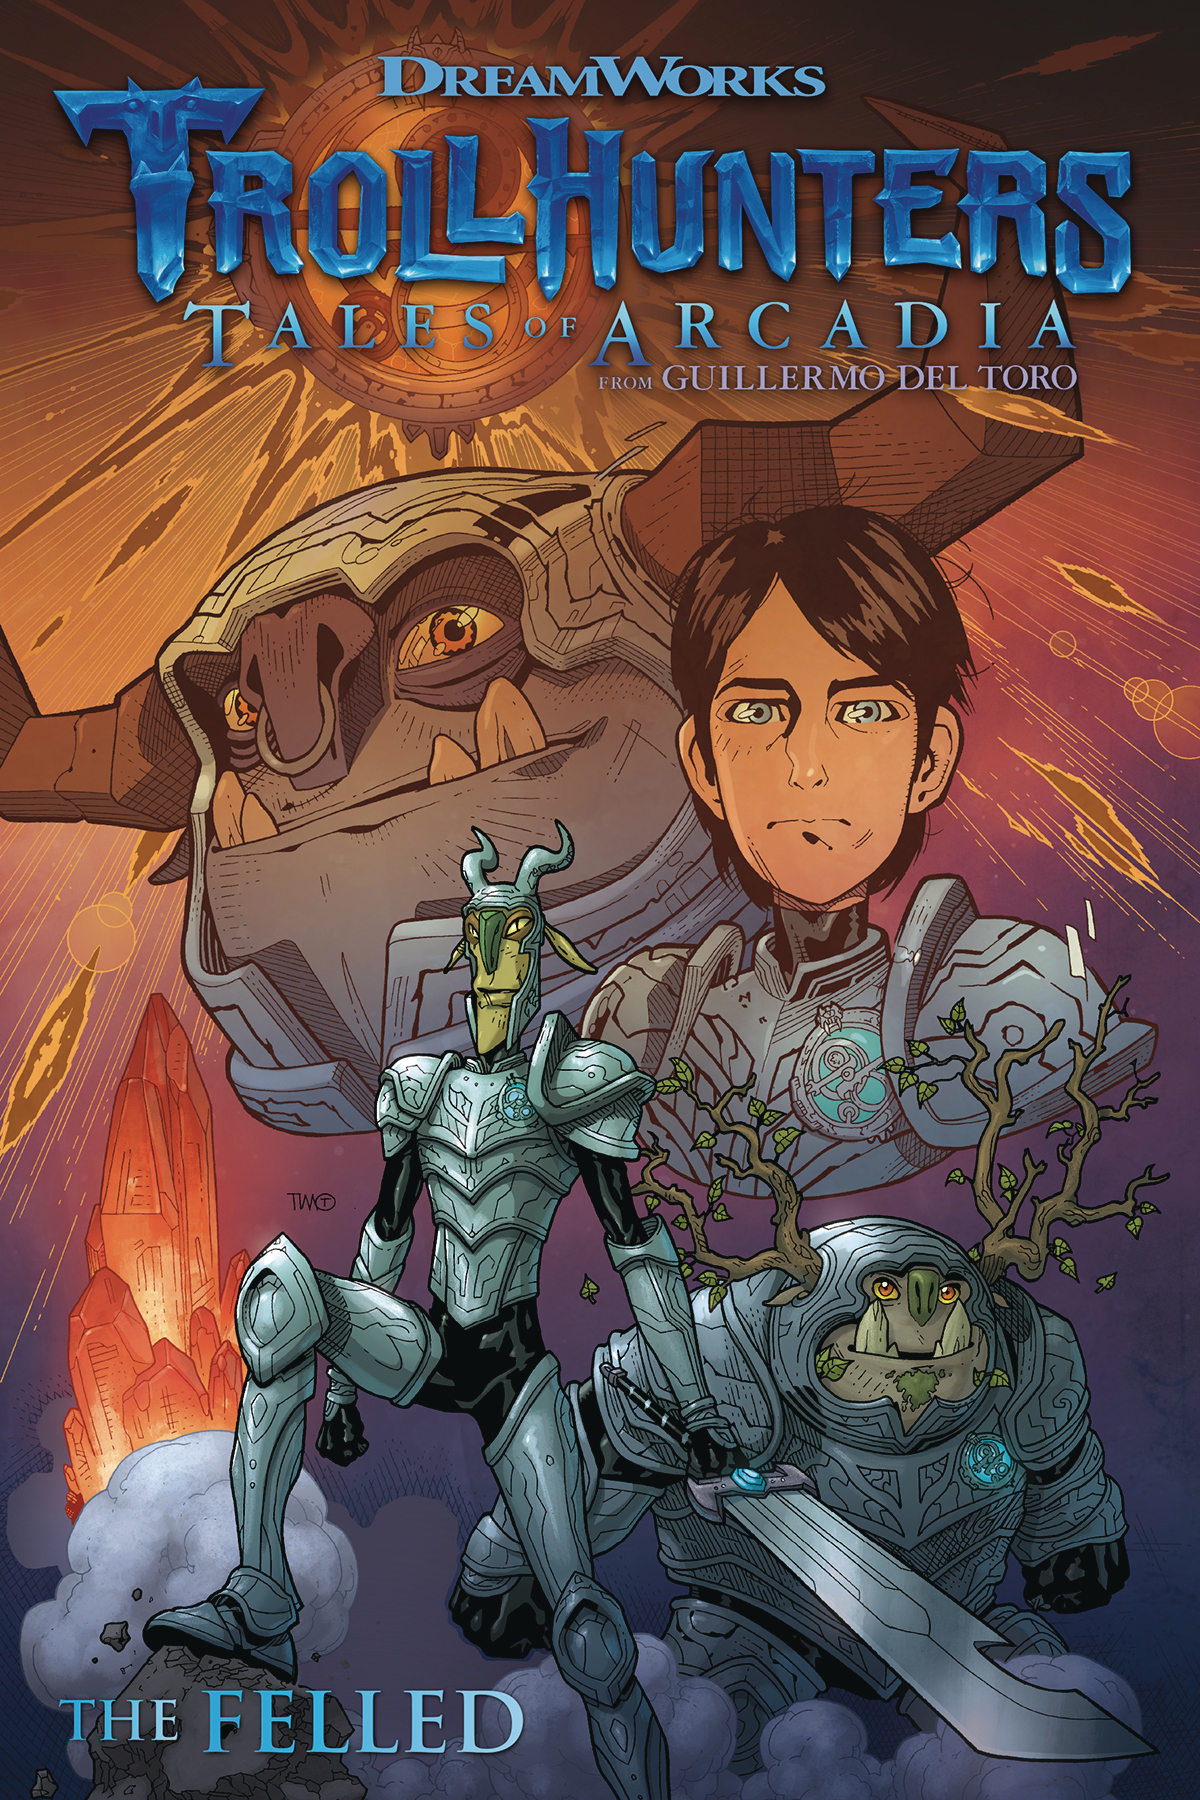 TROLLHUNTERS TALES OF ARCADIA THE FELLED TP (JUN180308)